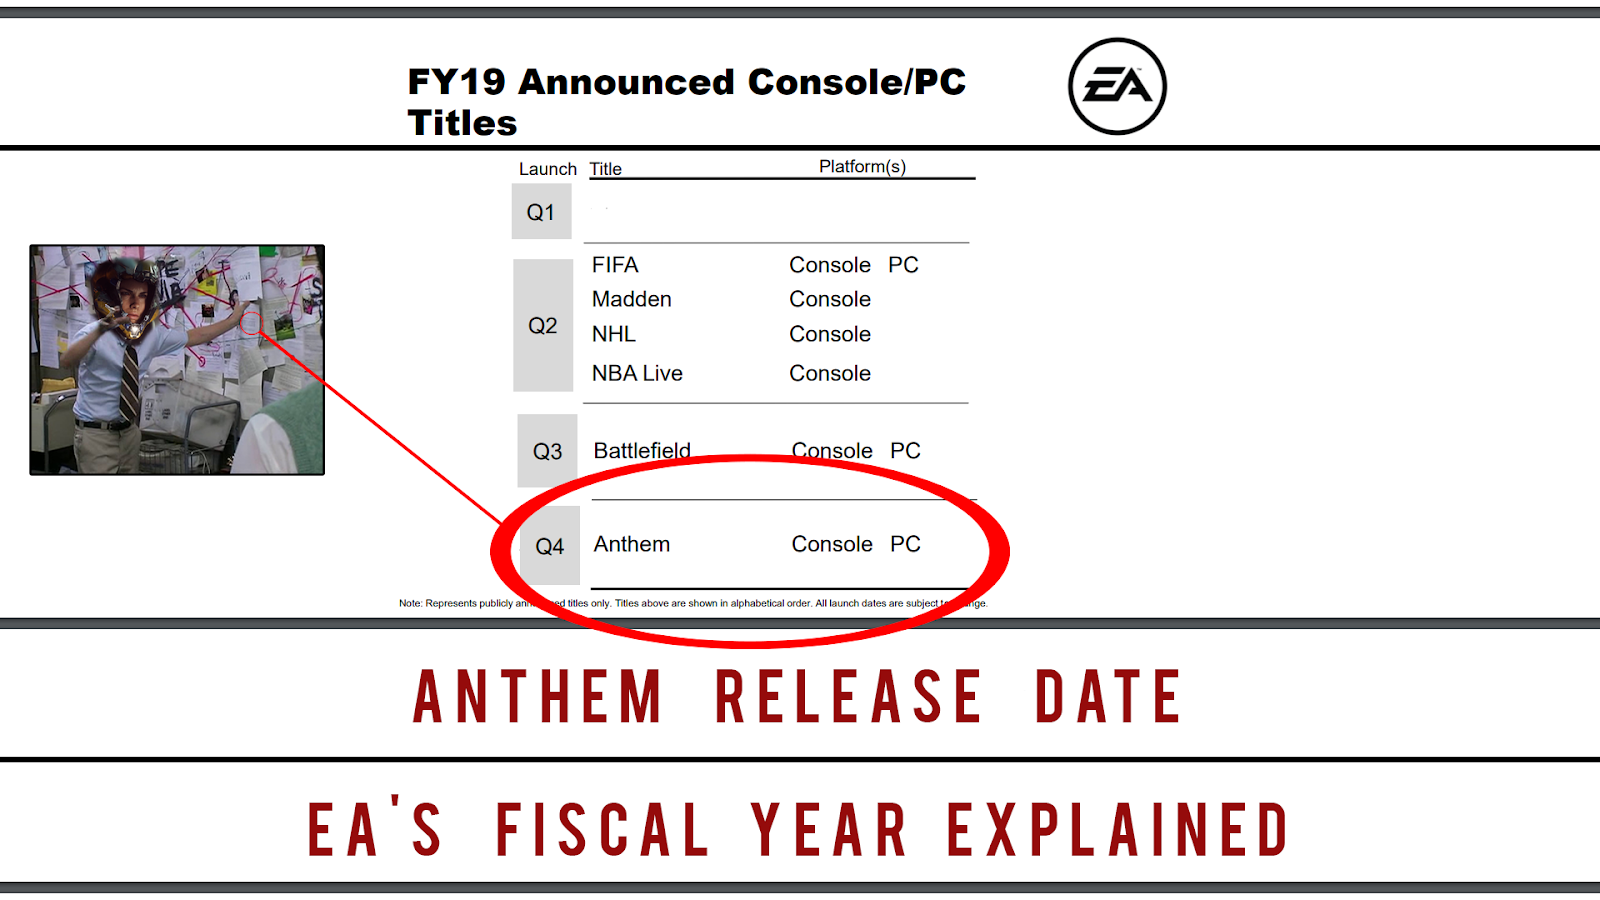 Anthem Release Date Q1 2019 Fy19 Q4 Ea S Fiscal Year